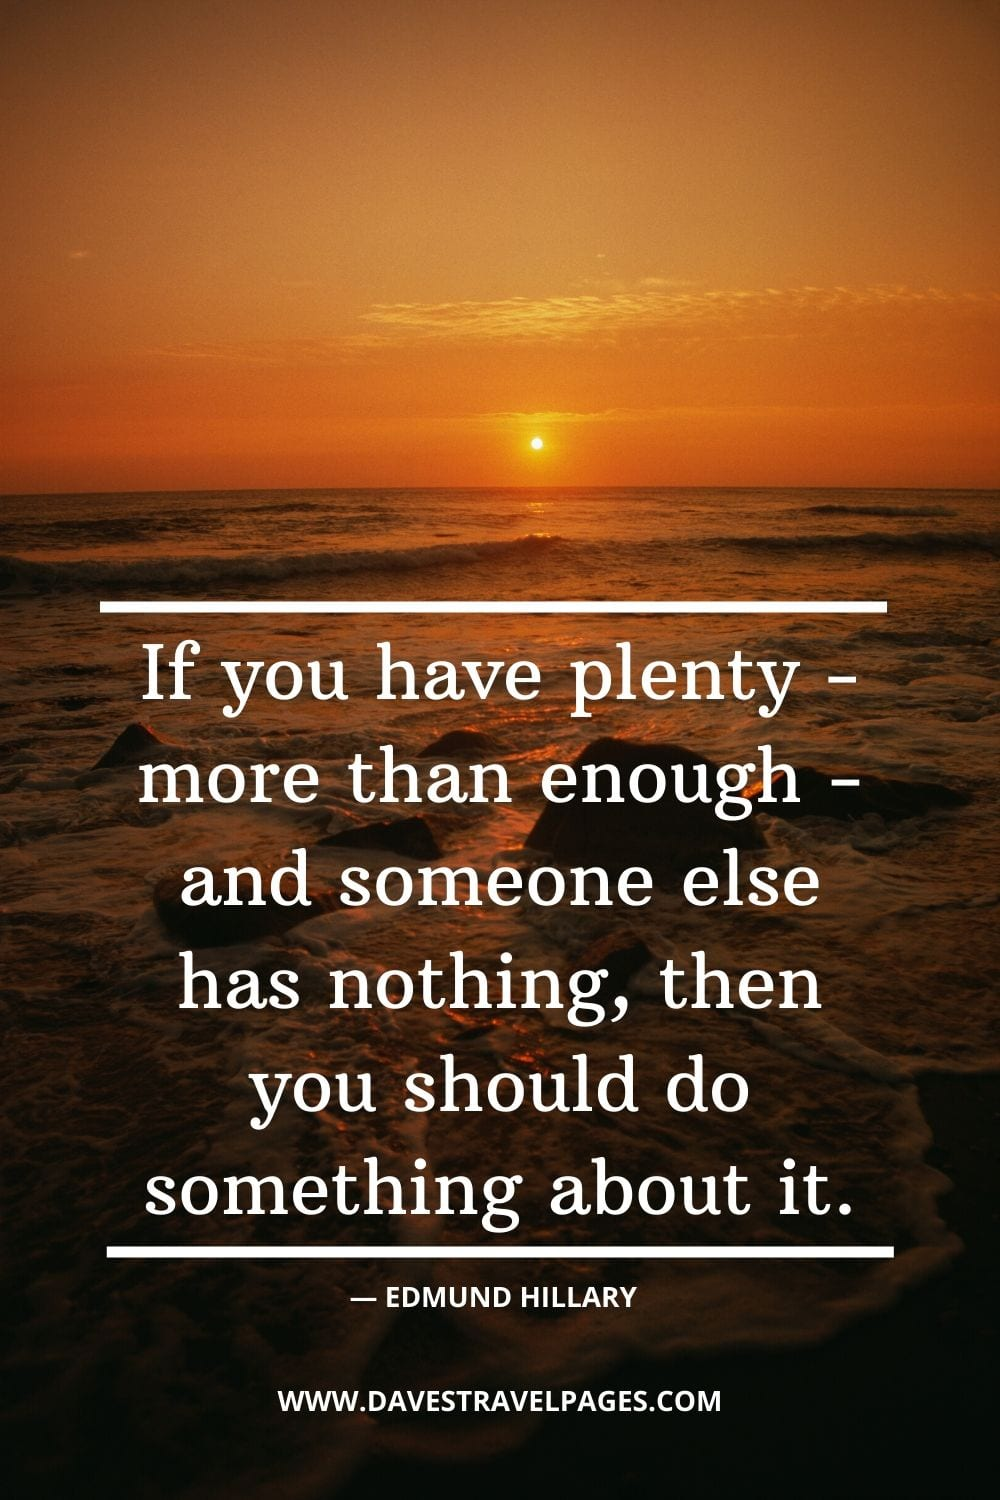 "Edmund Hillary Quote: ""If you have plenty - more than enough - and someone else has nothing, then you should do something about it."""